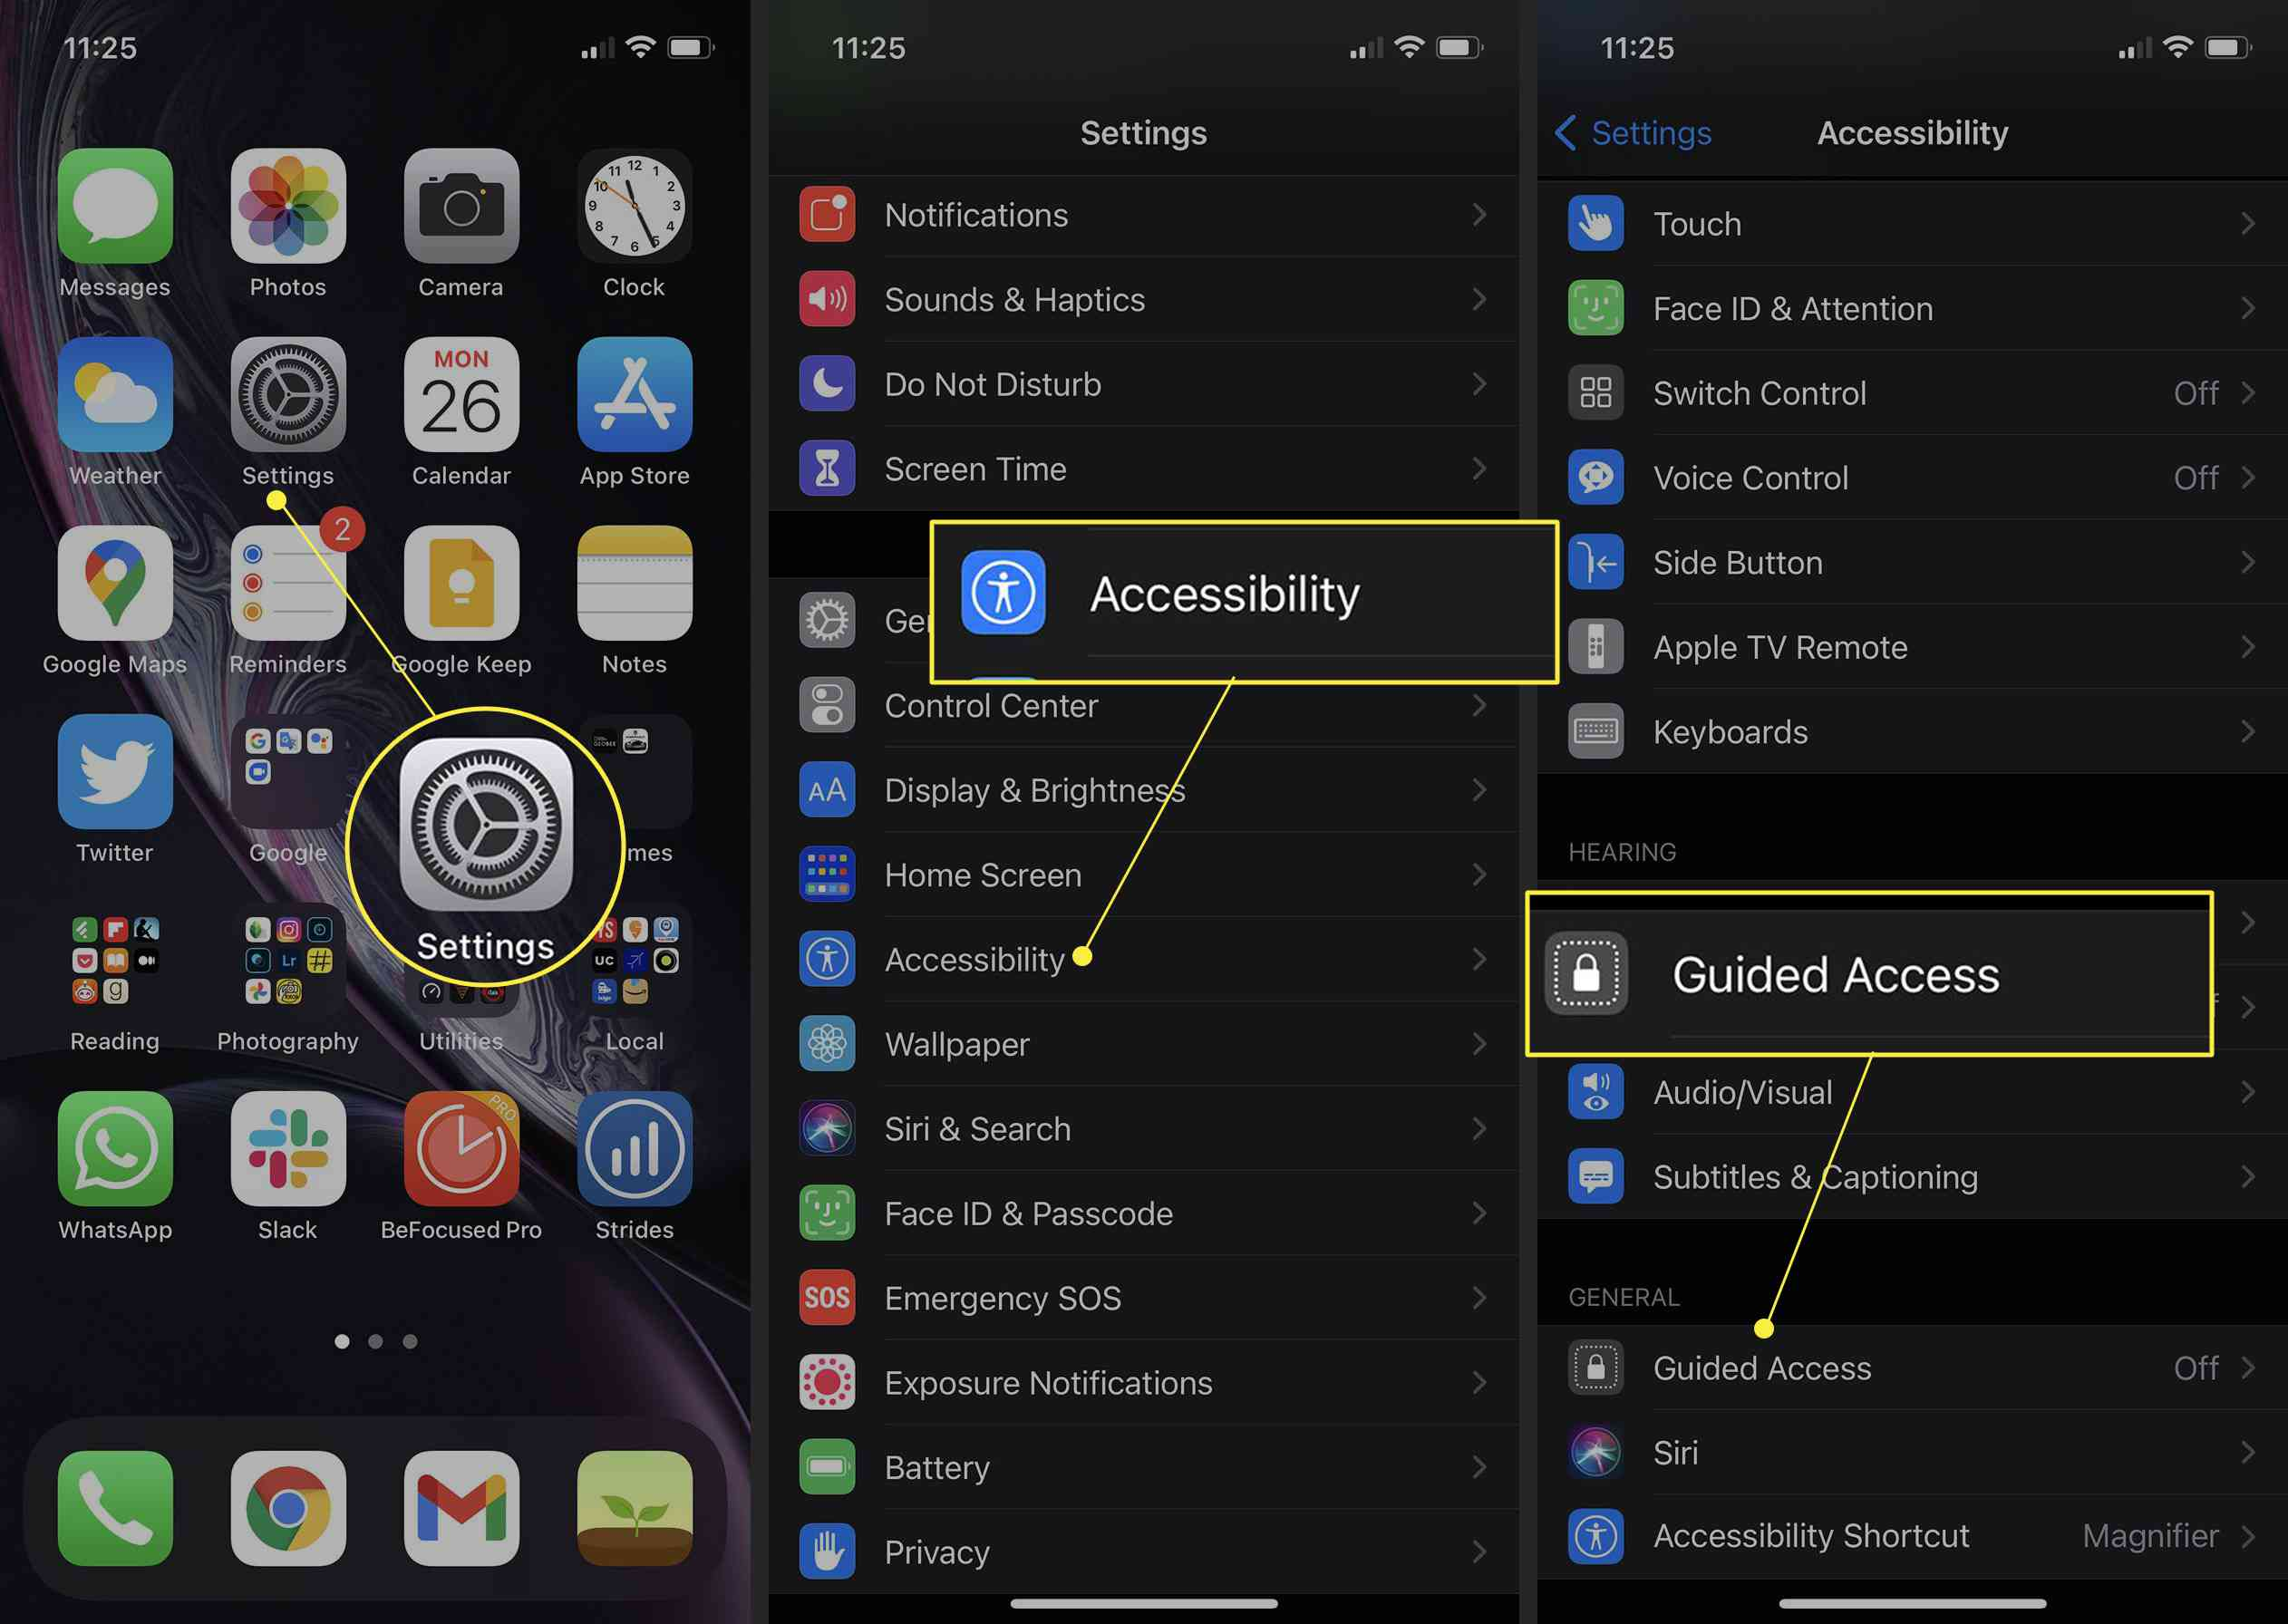 iPhone Accessibility Settings with Guided Access highlighted